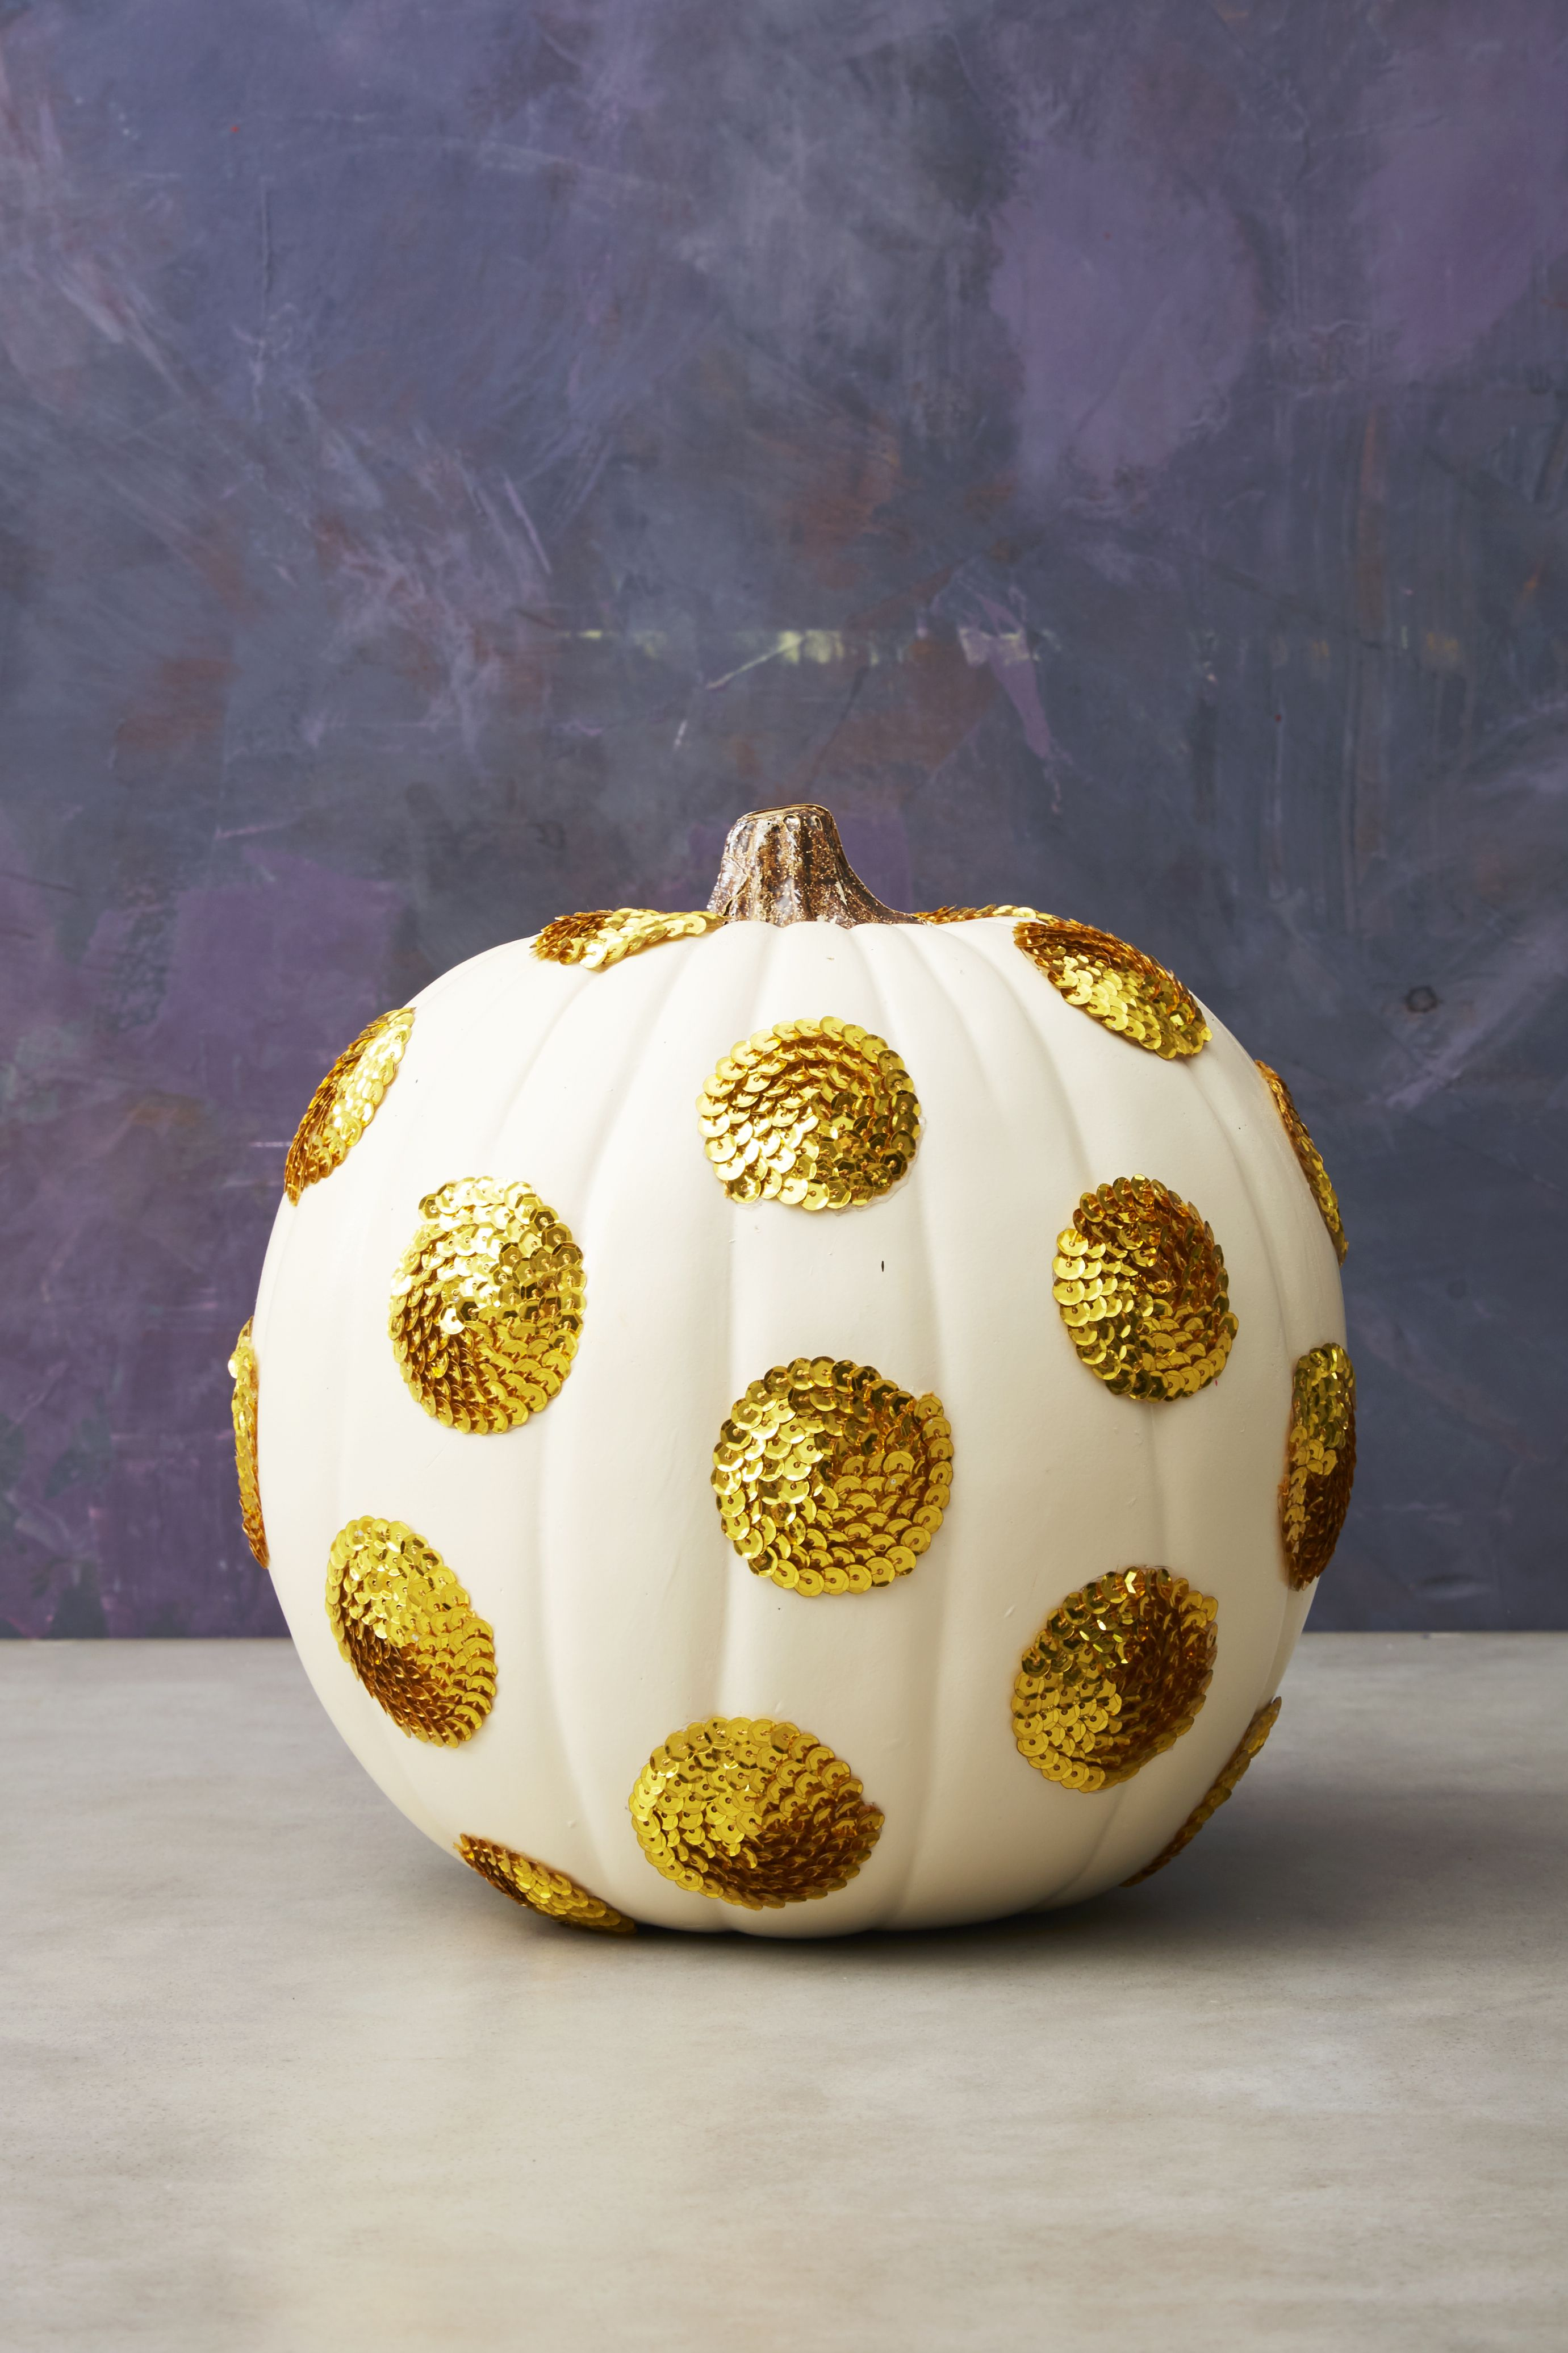 sequin polka dot halloween pumpkin & 60+ Pumpkin Designs We Love for 2018 - Pumpkin Decorating Ideas